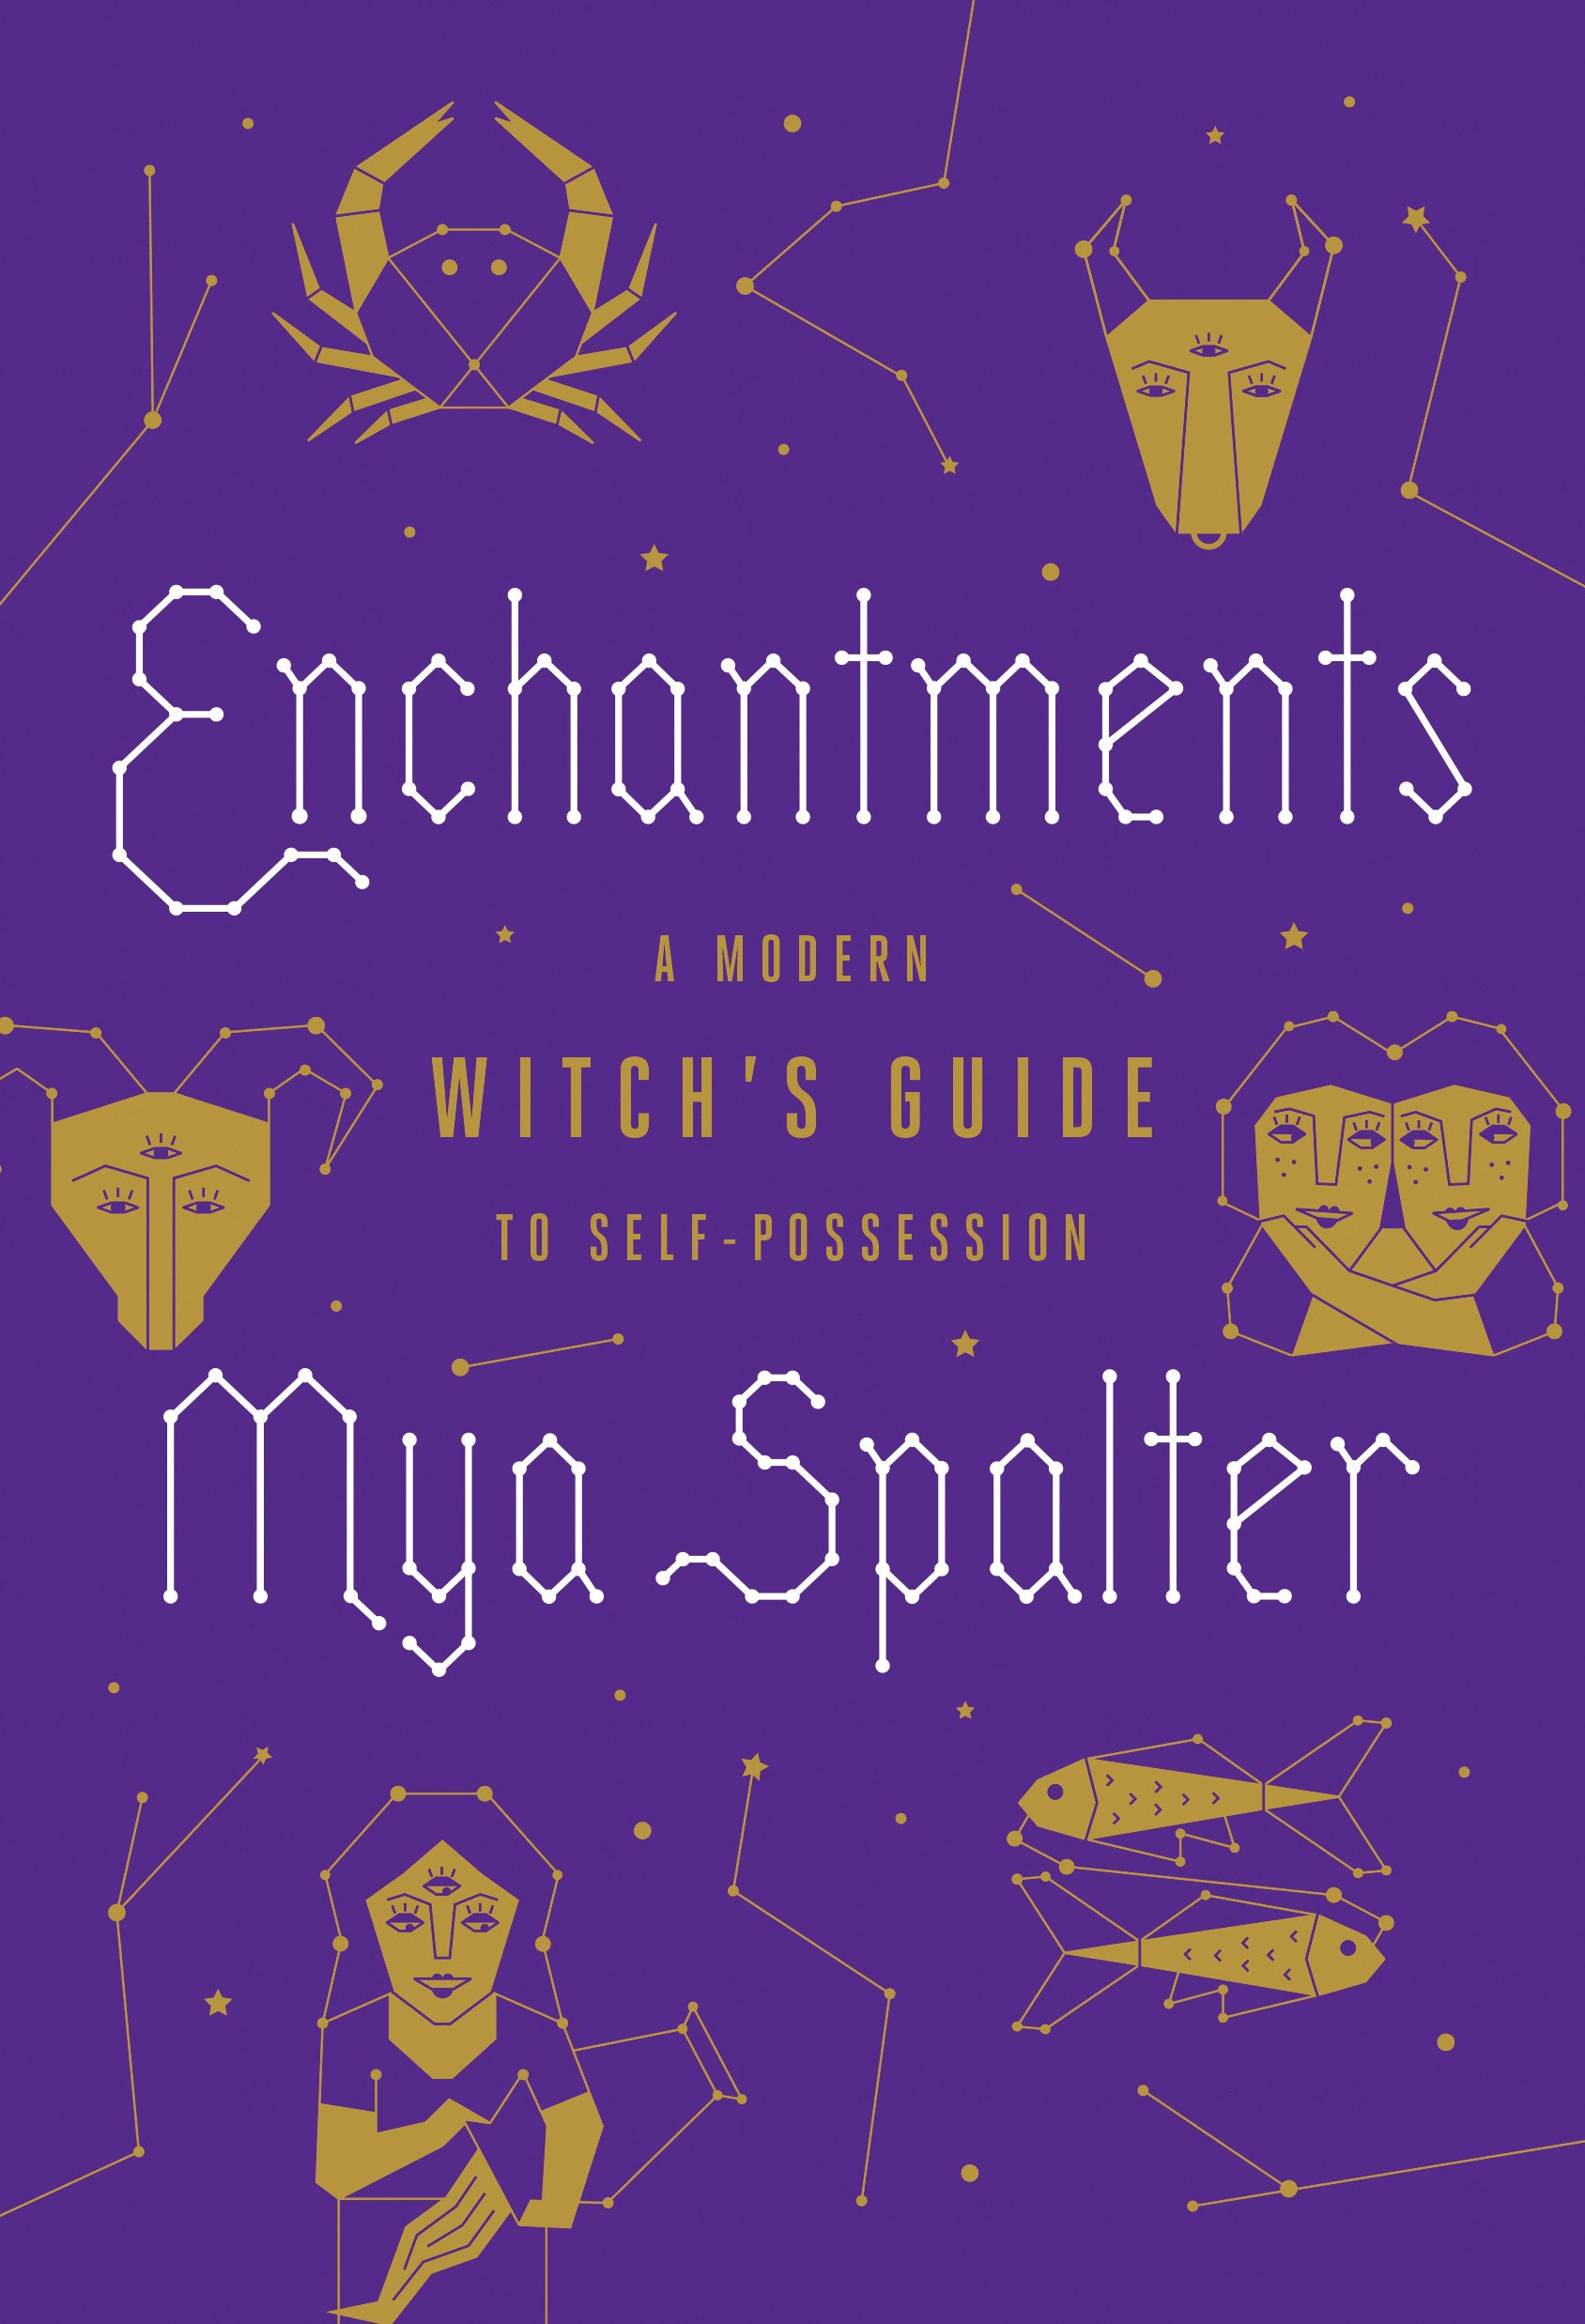 Read an Excerpt from *Enchantments*